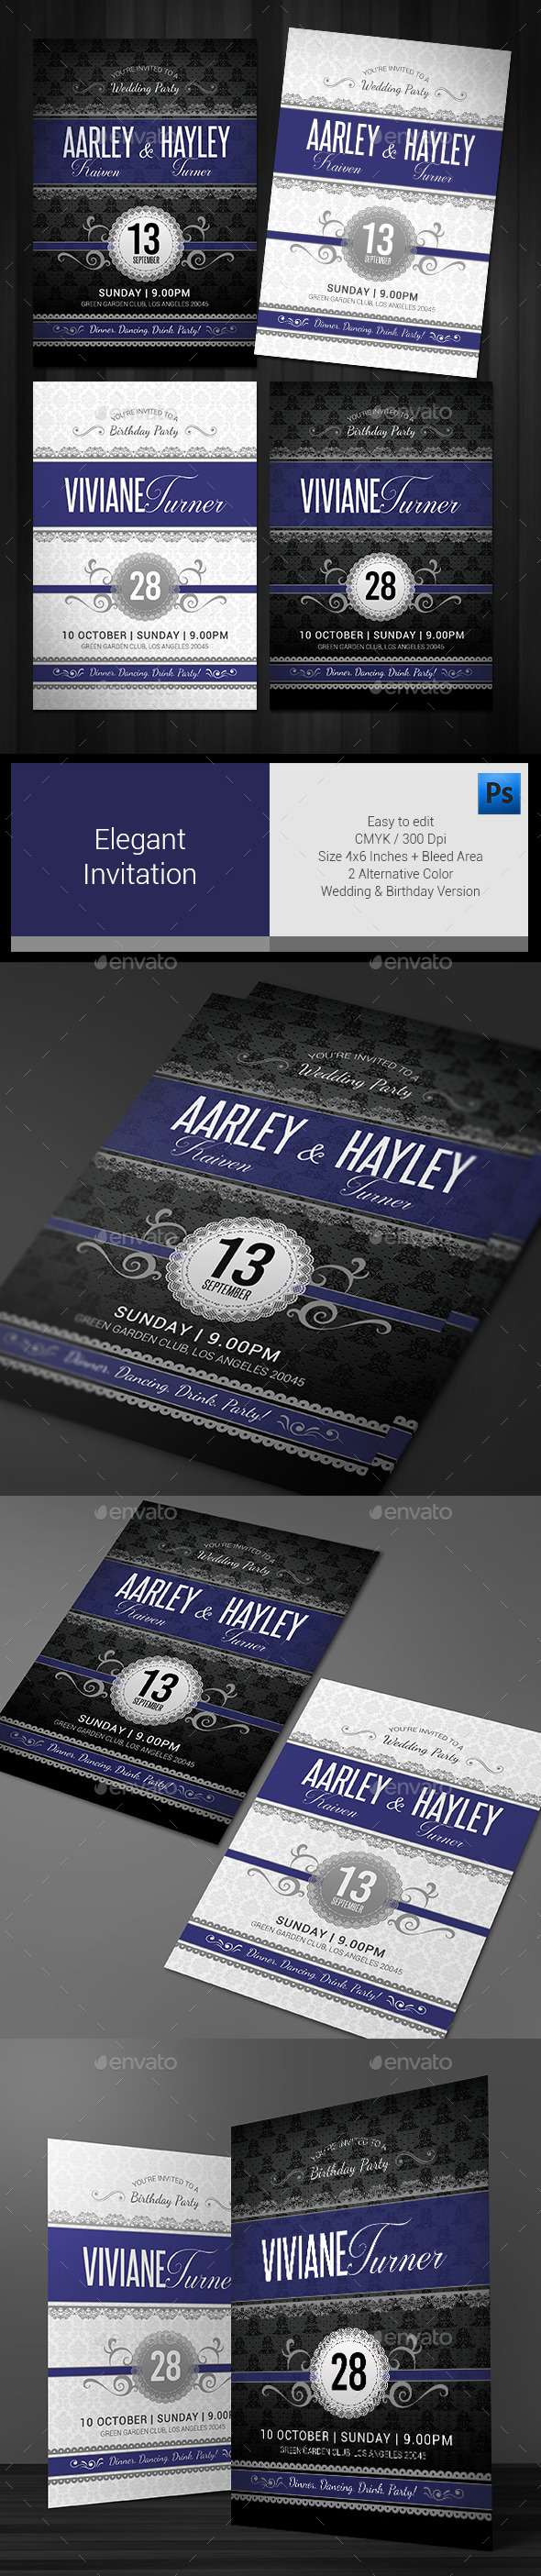 Elegant Invitation  - Invitations Cards & Invites